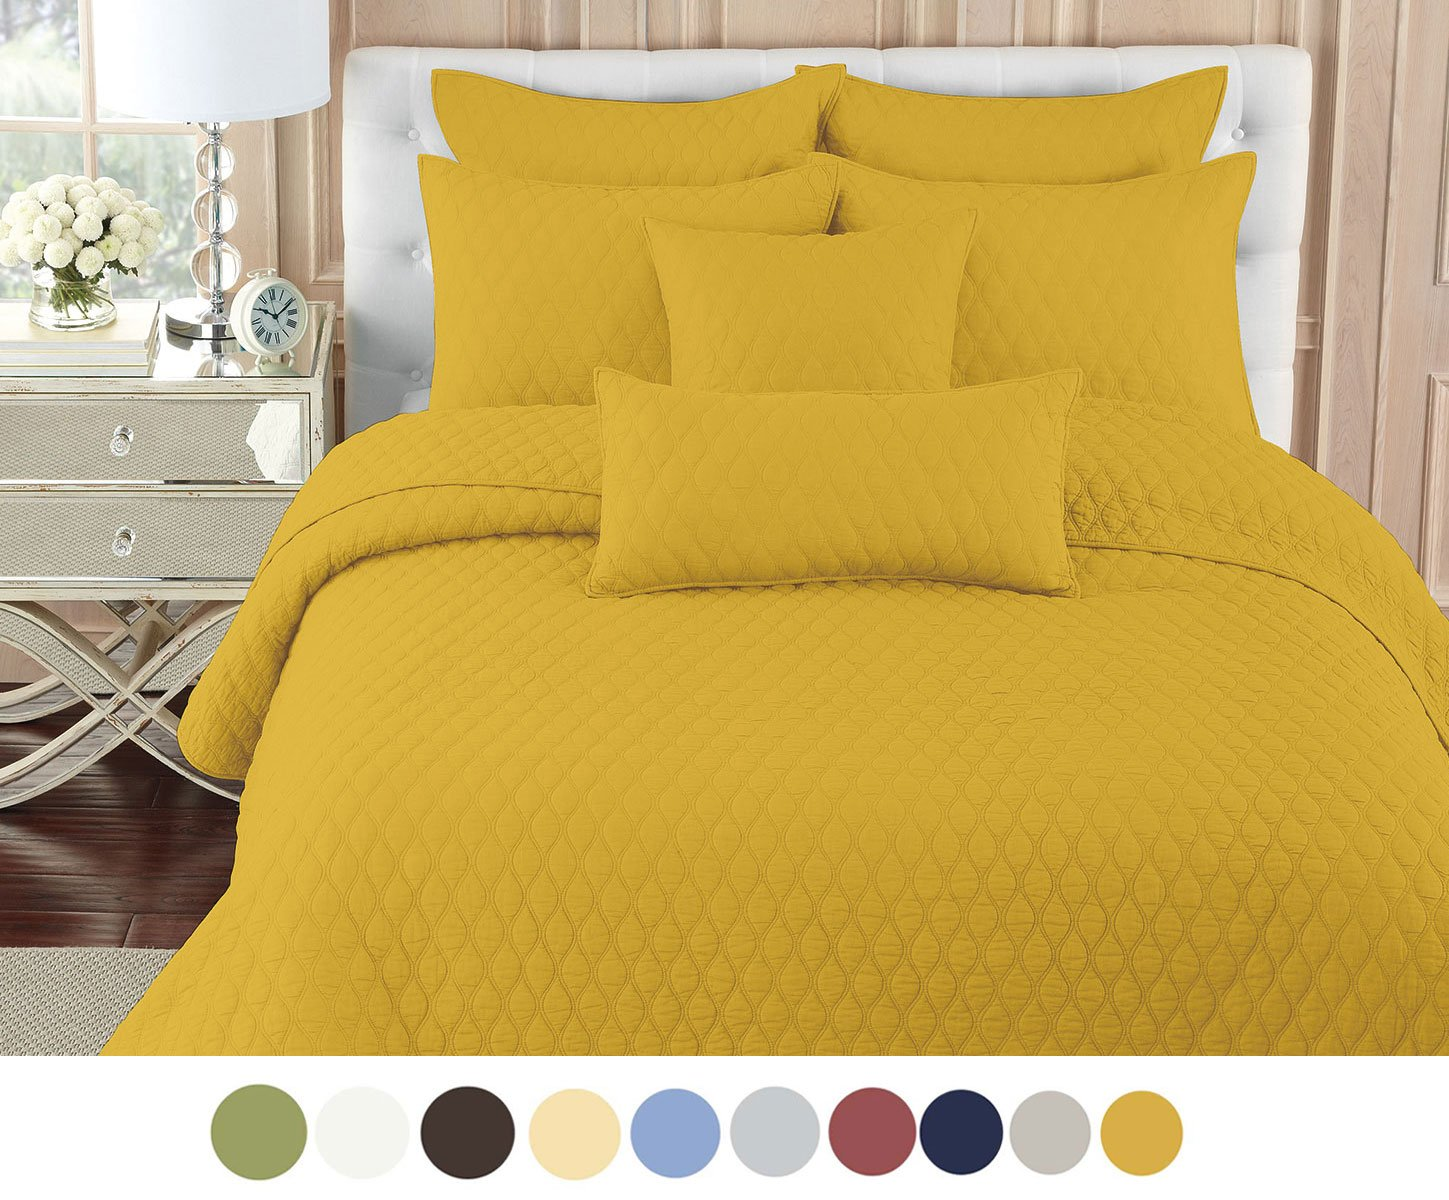 Eastend Home Fashions Circle Ogee Quilt Set Microfiber quilt set, Full/Queen, Spicy Mustard